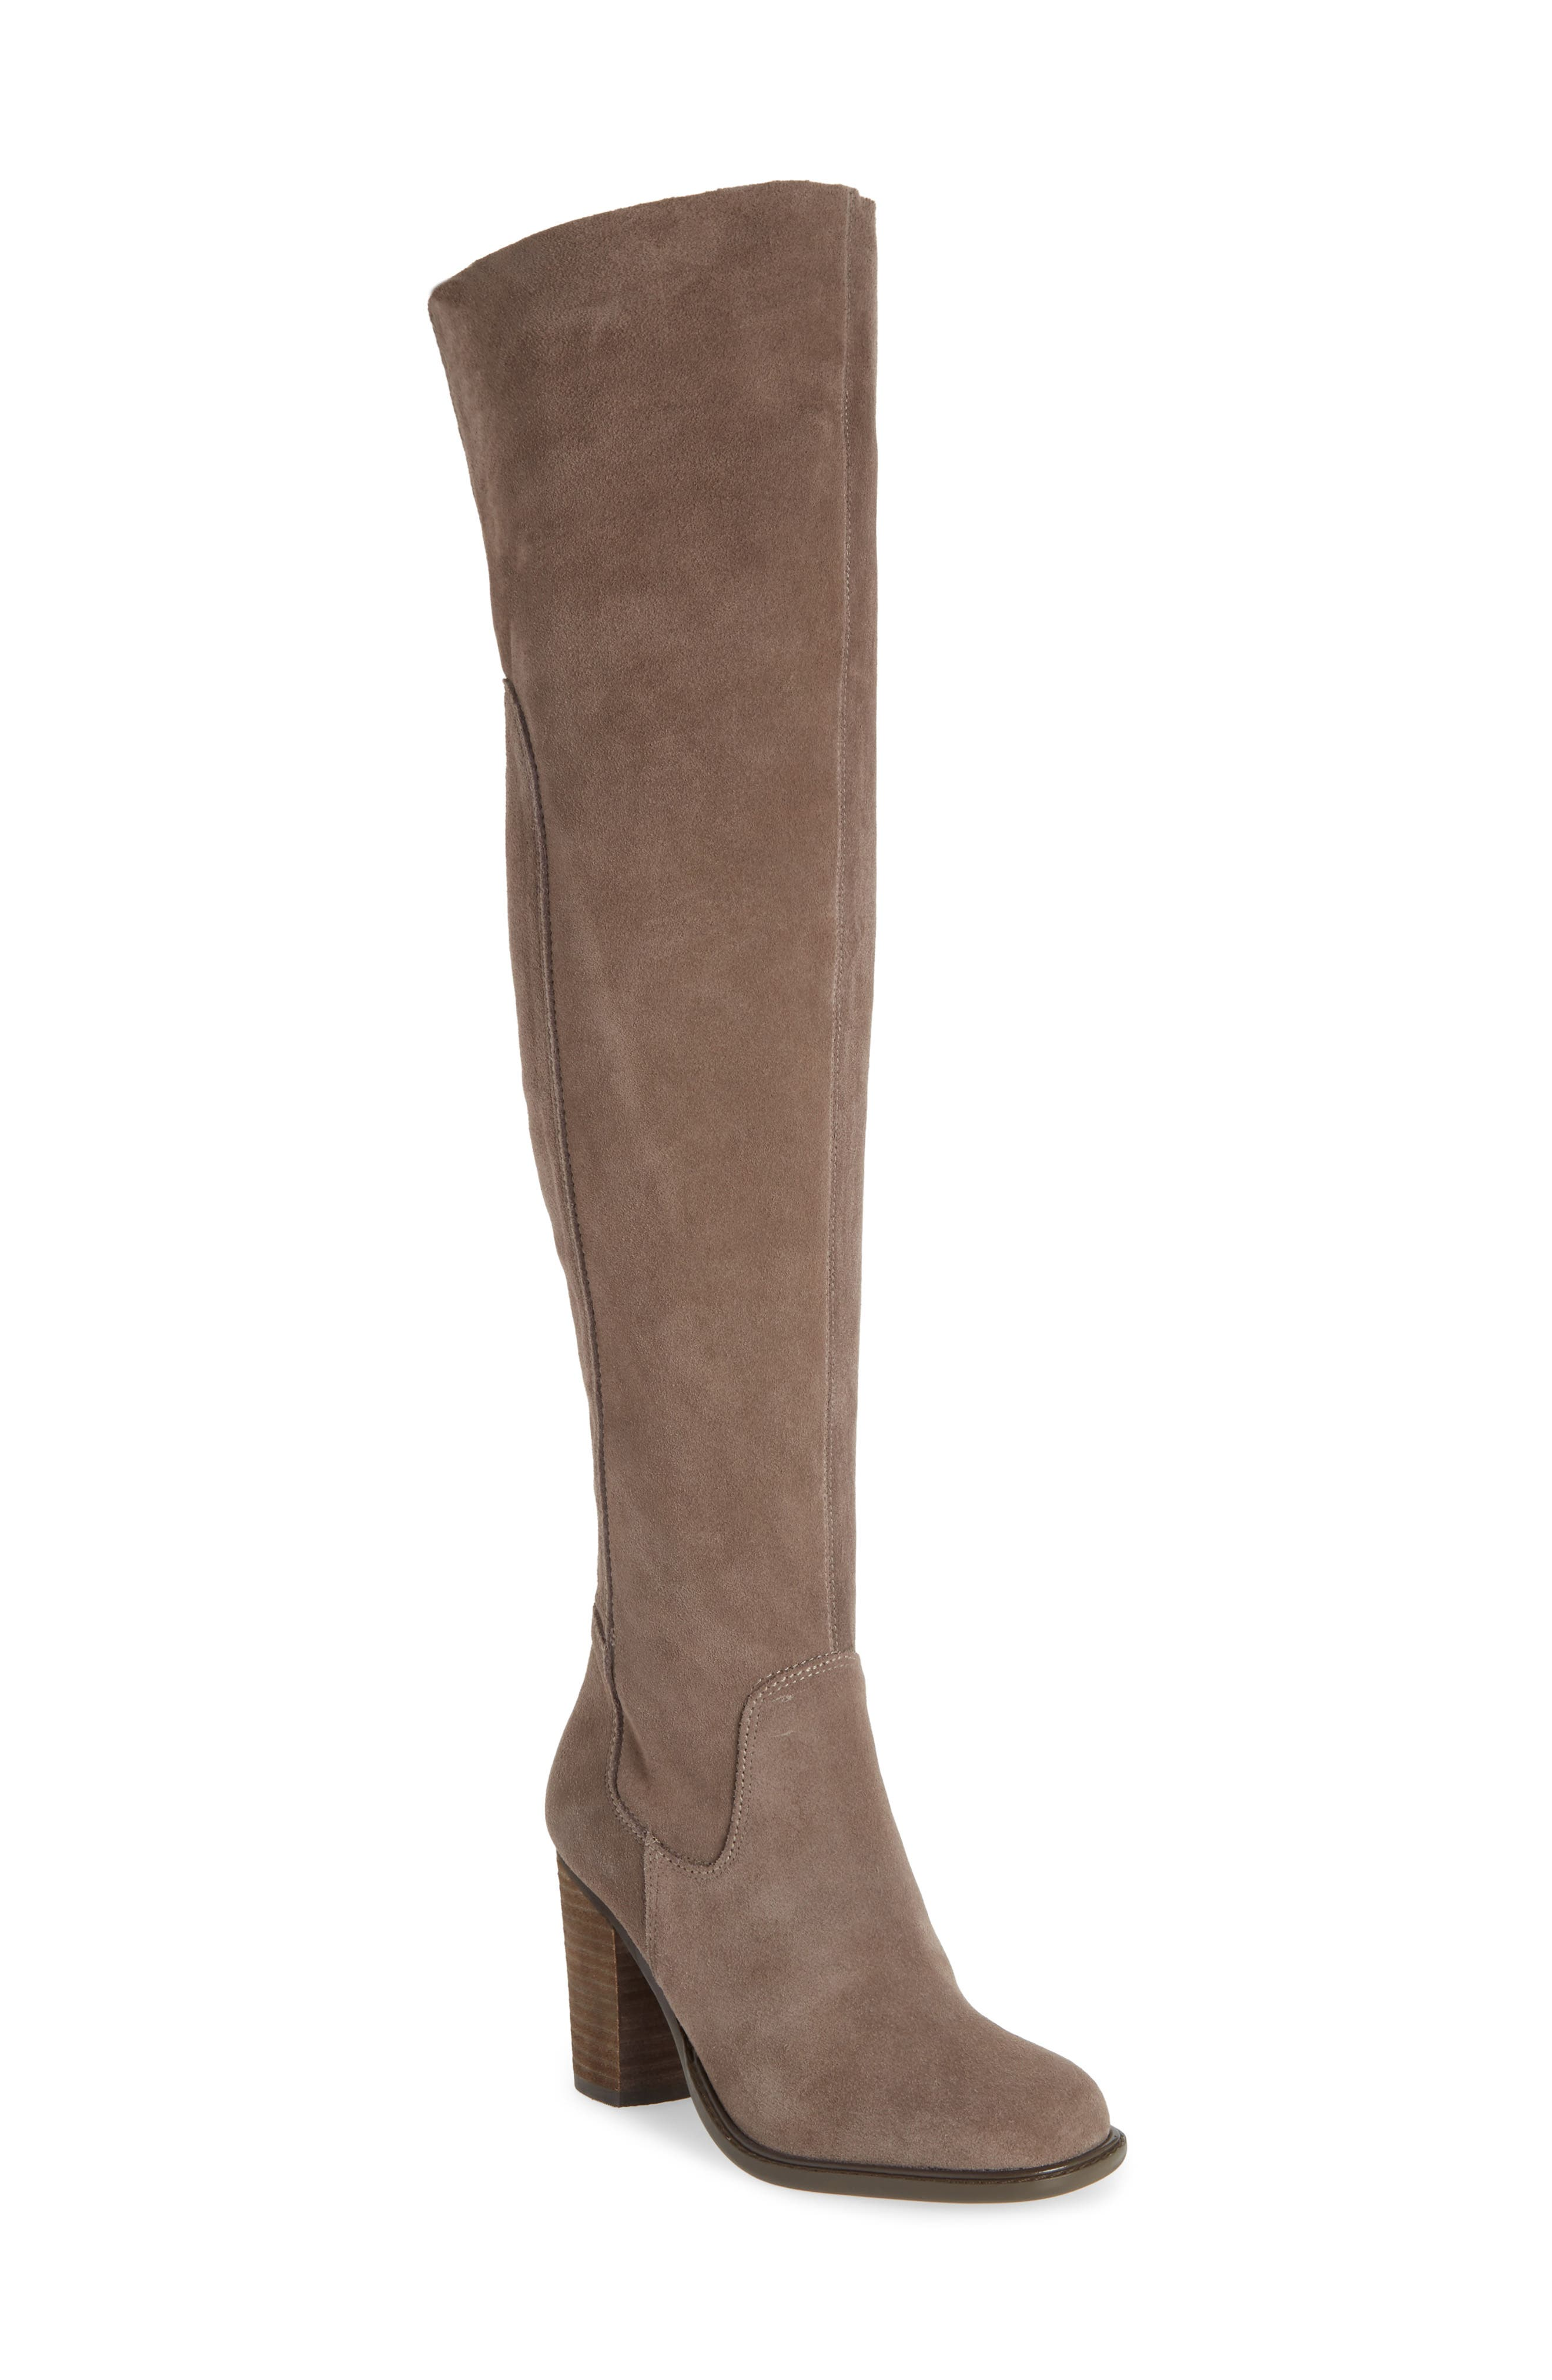 KELSI DAGGER BROOKLYN, Logan Over the Knee Boot, Main thumbnail 1, color, WARM GREY SUEDE